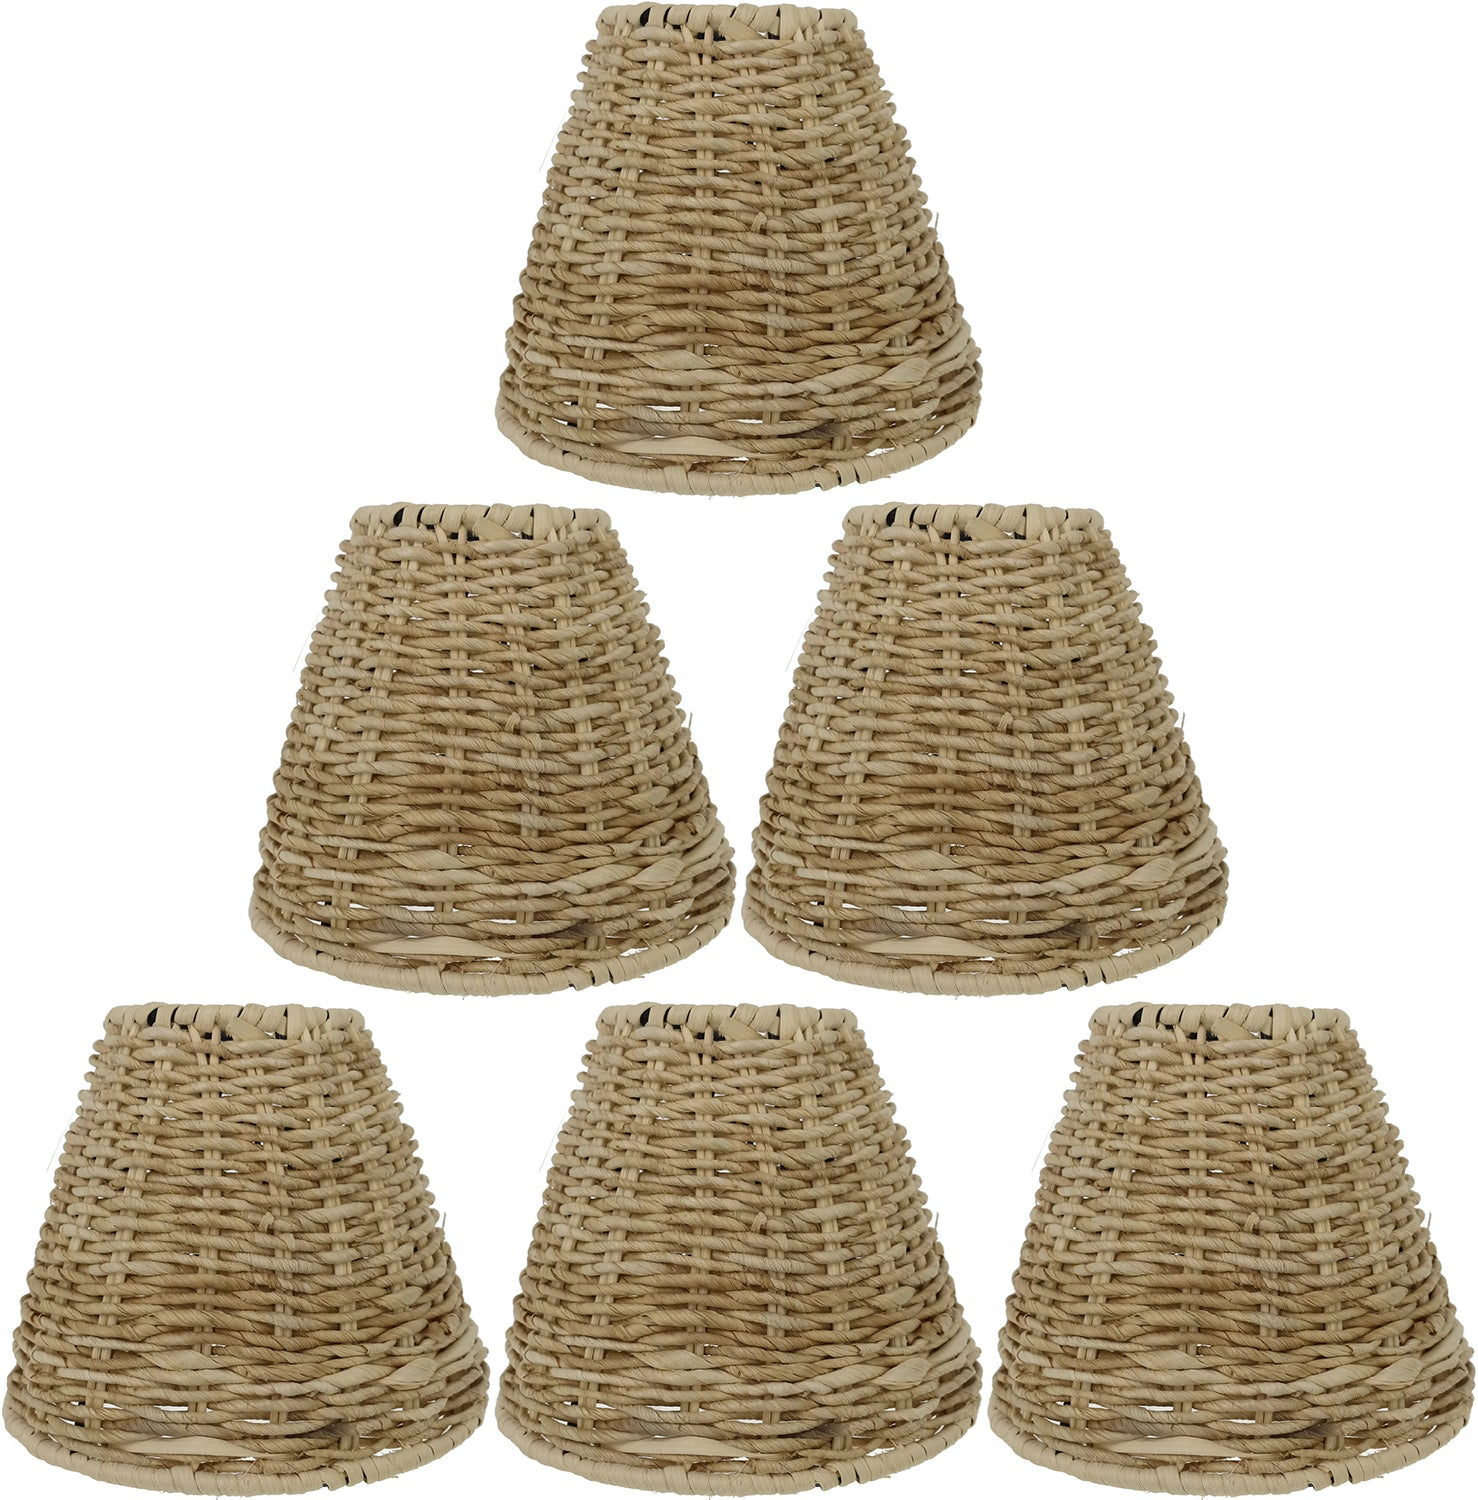 Natural Grass Chandelier Lamp Shades, Clip-on, 2 3/4-inch by 5 1/2-inch by 4 3/4-inch